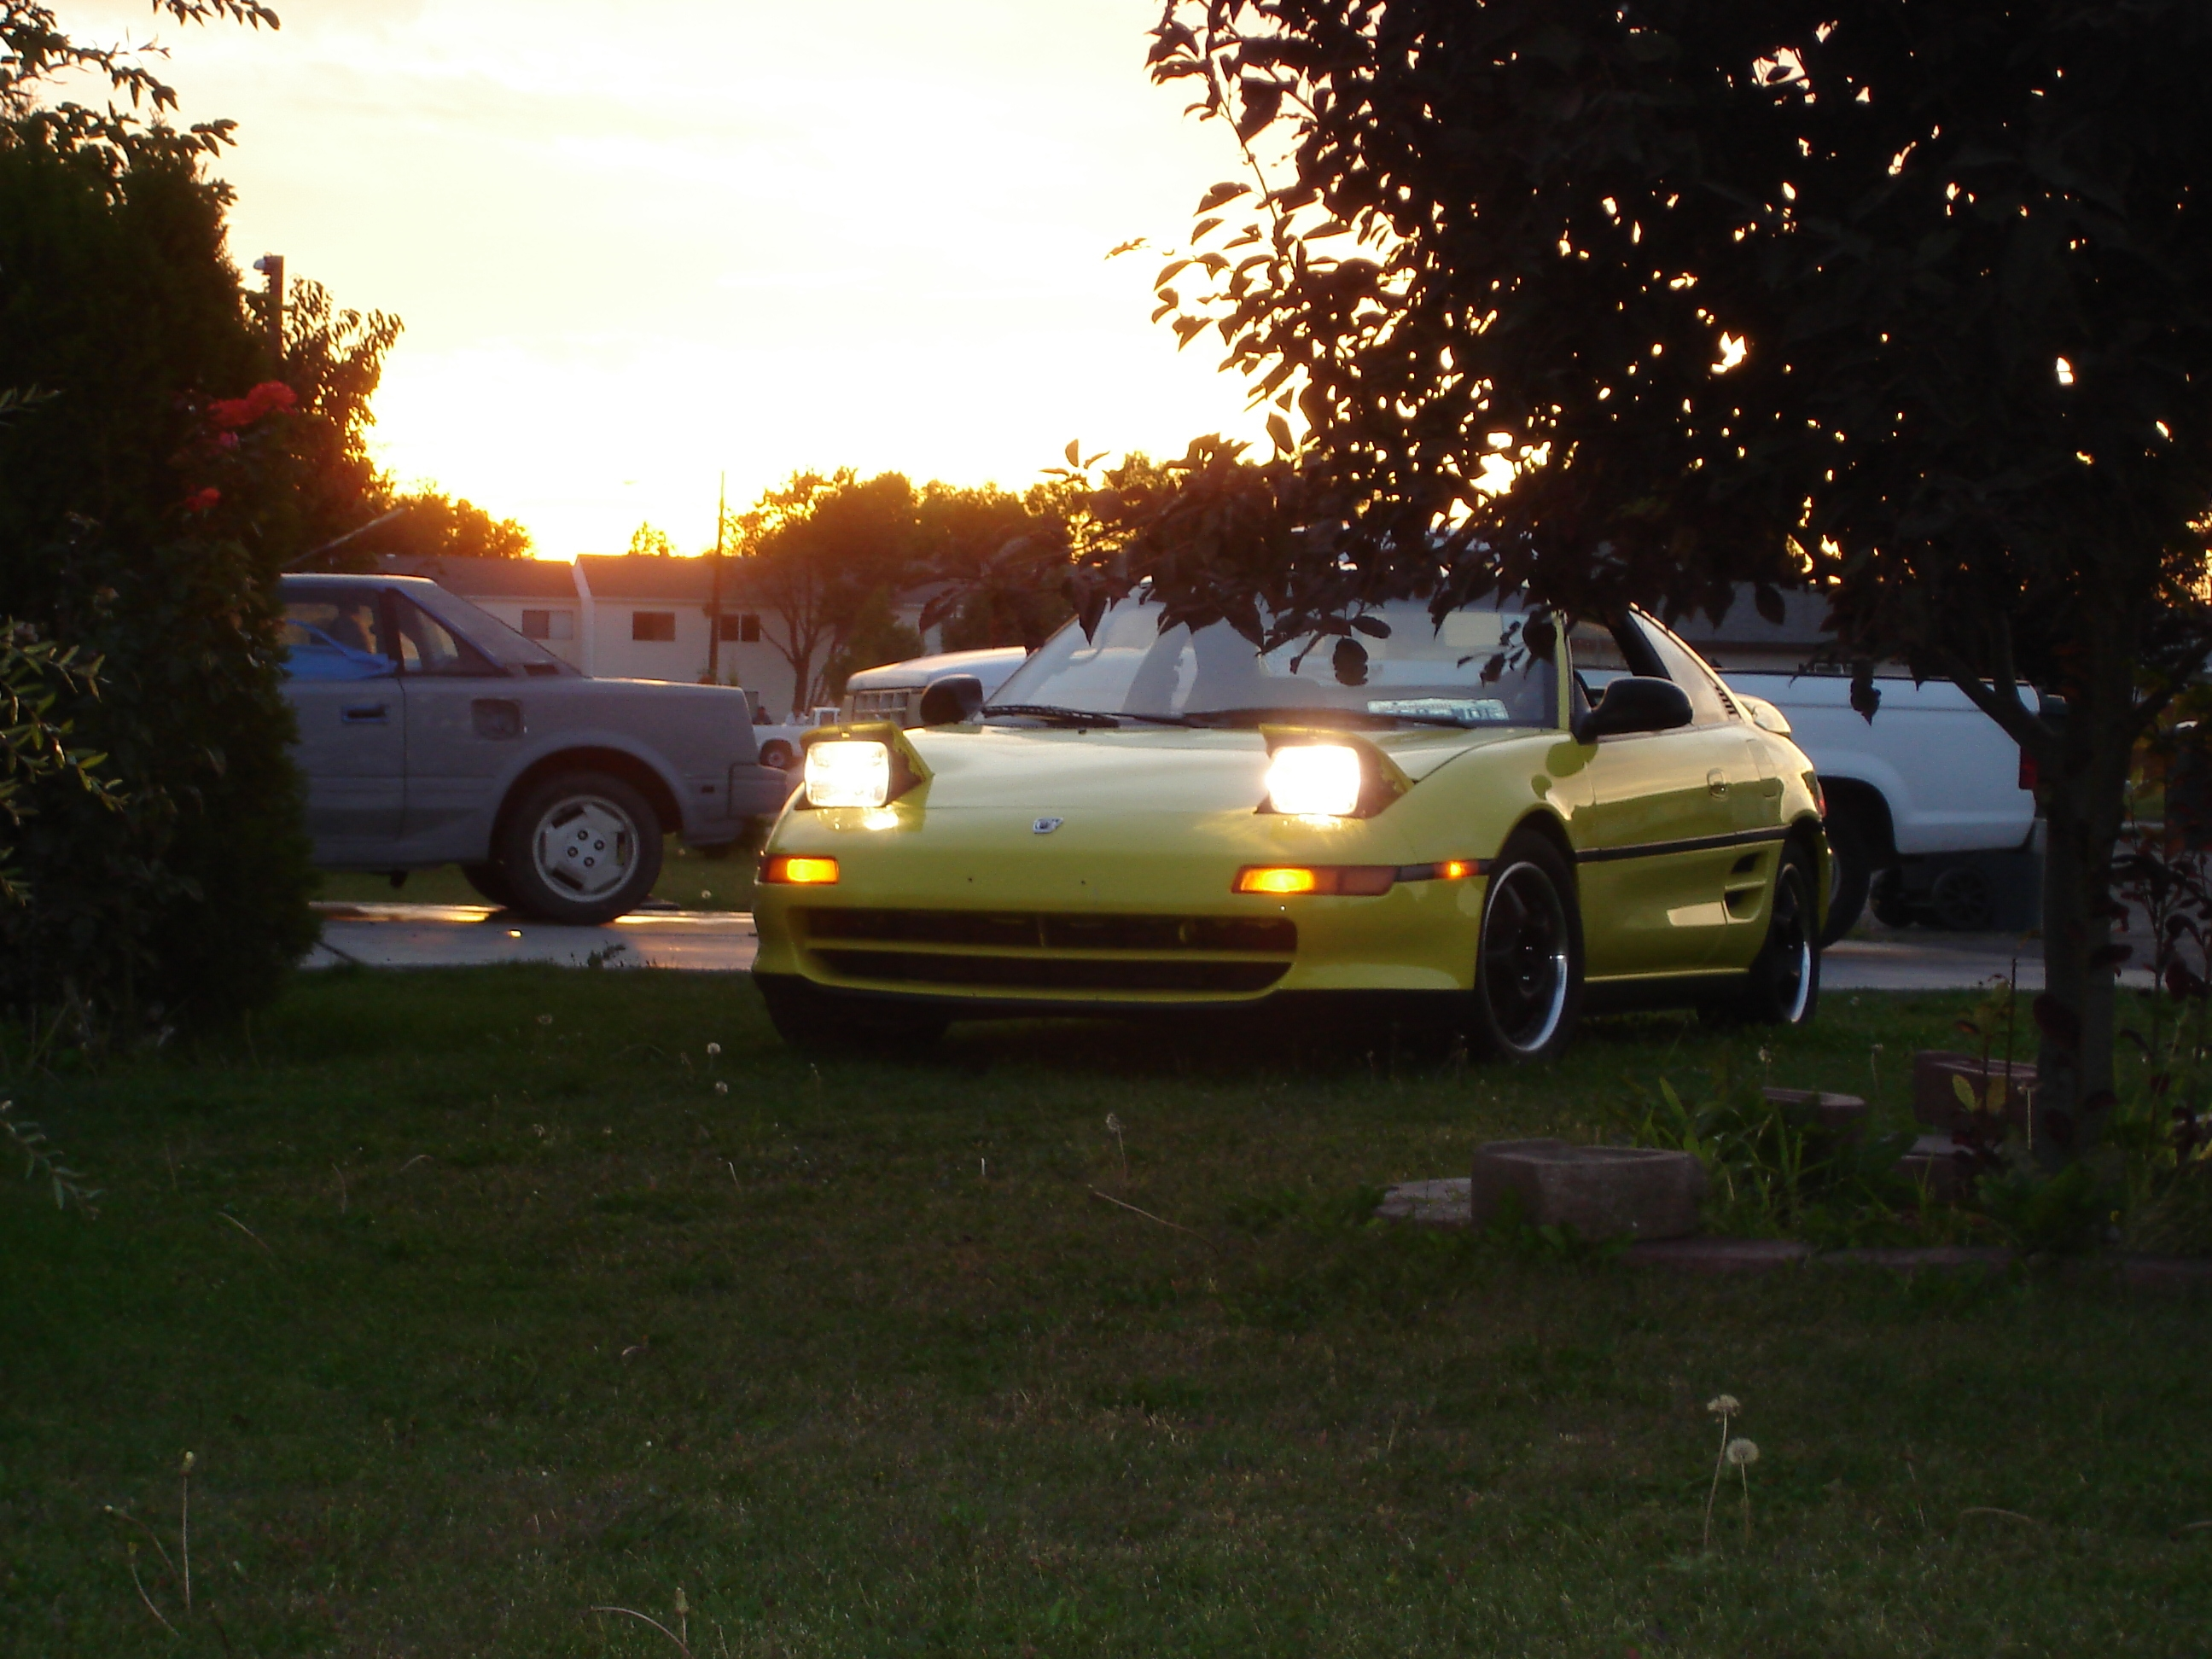 YELOW_MR2's 1991 Toyota MR2